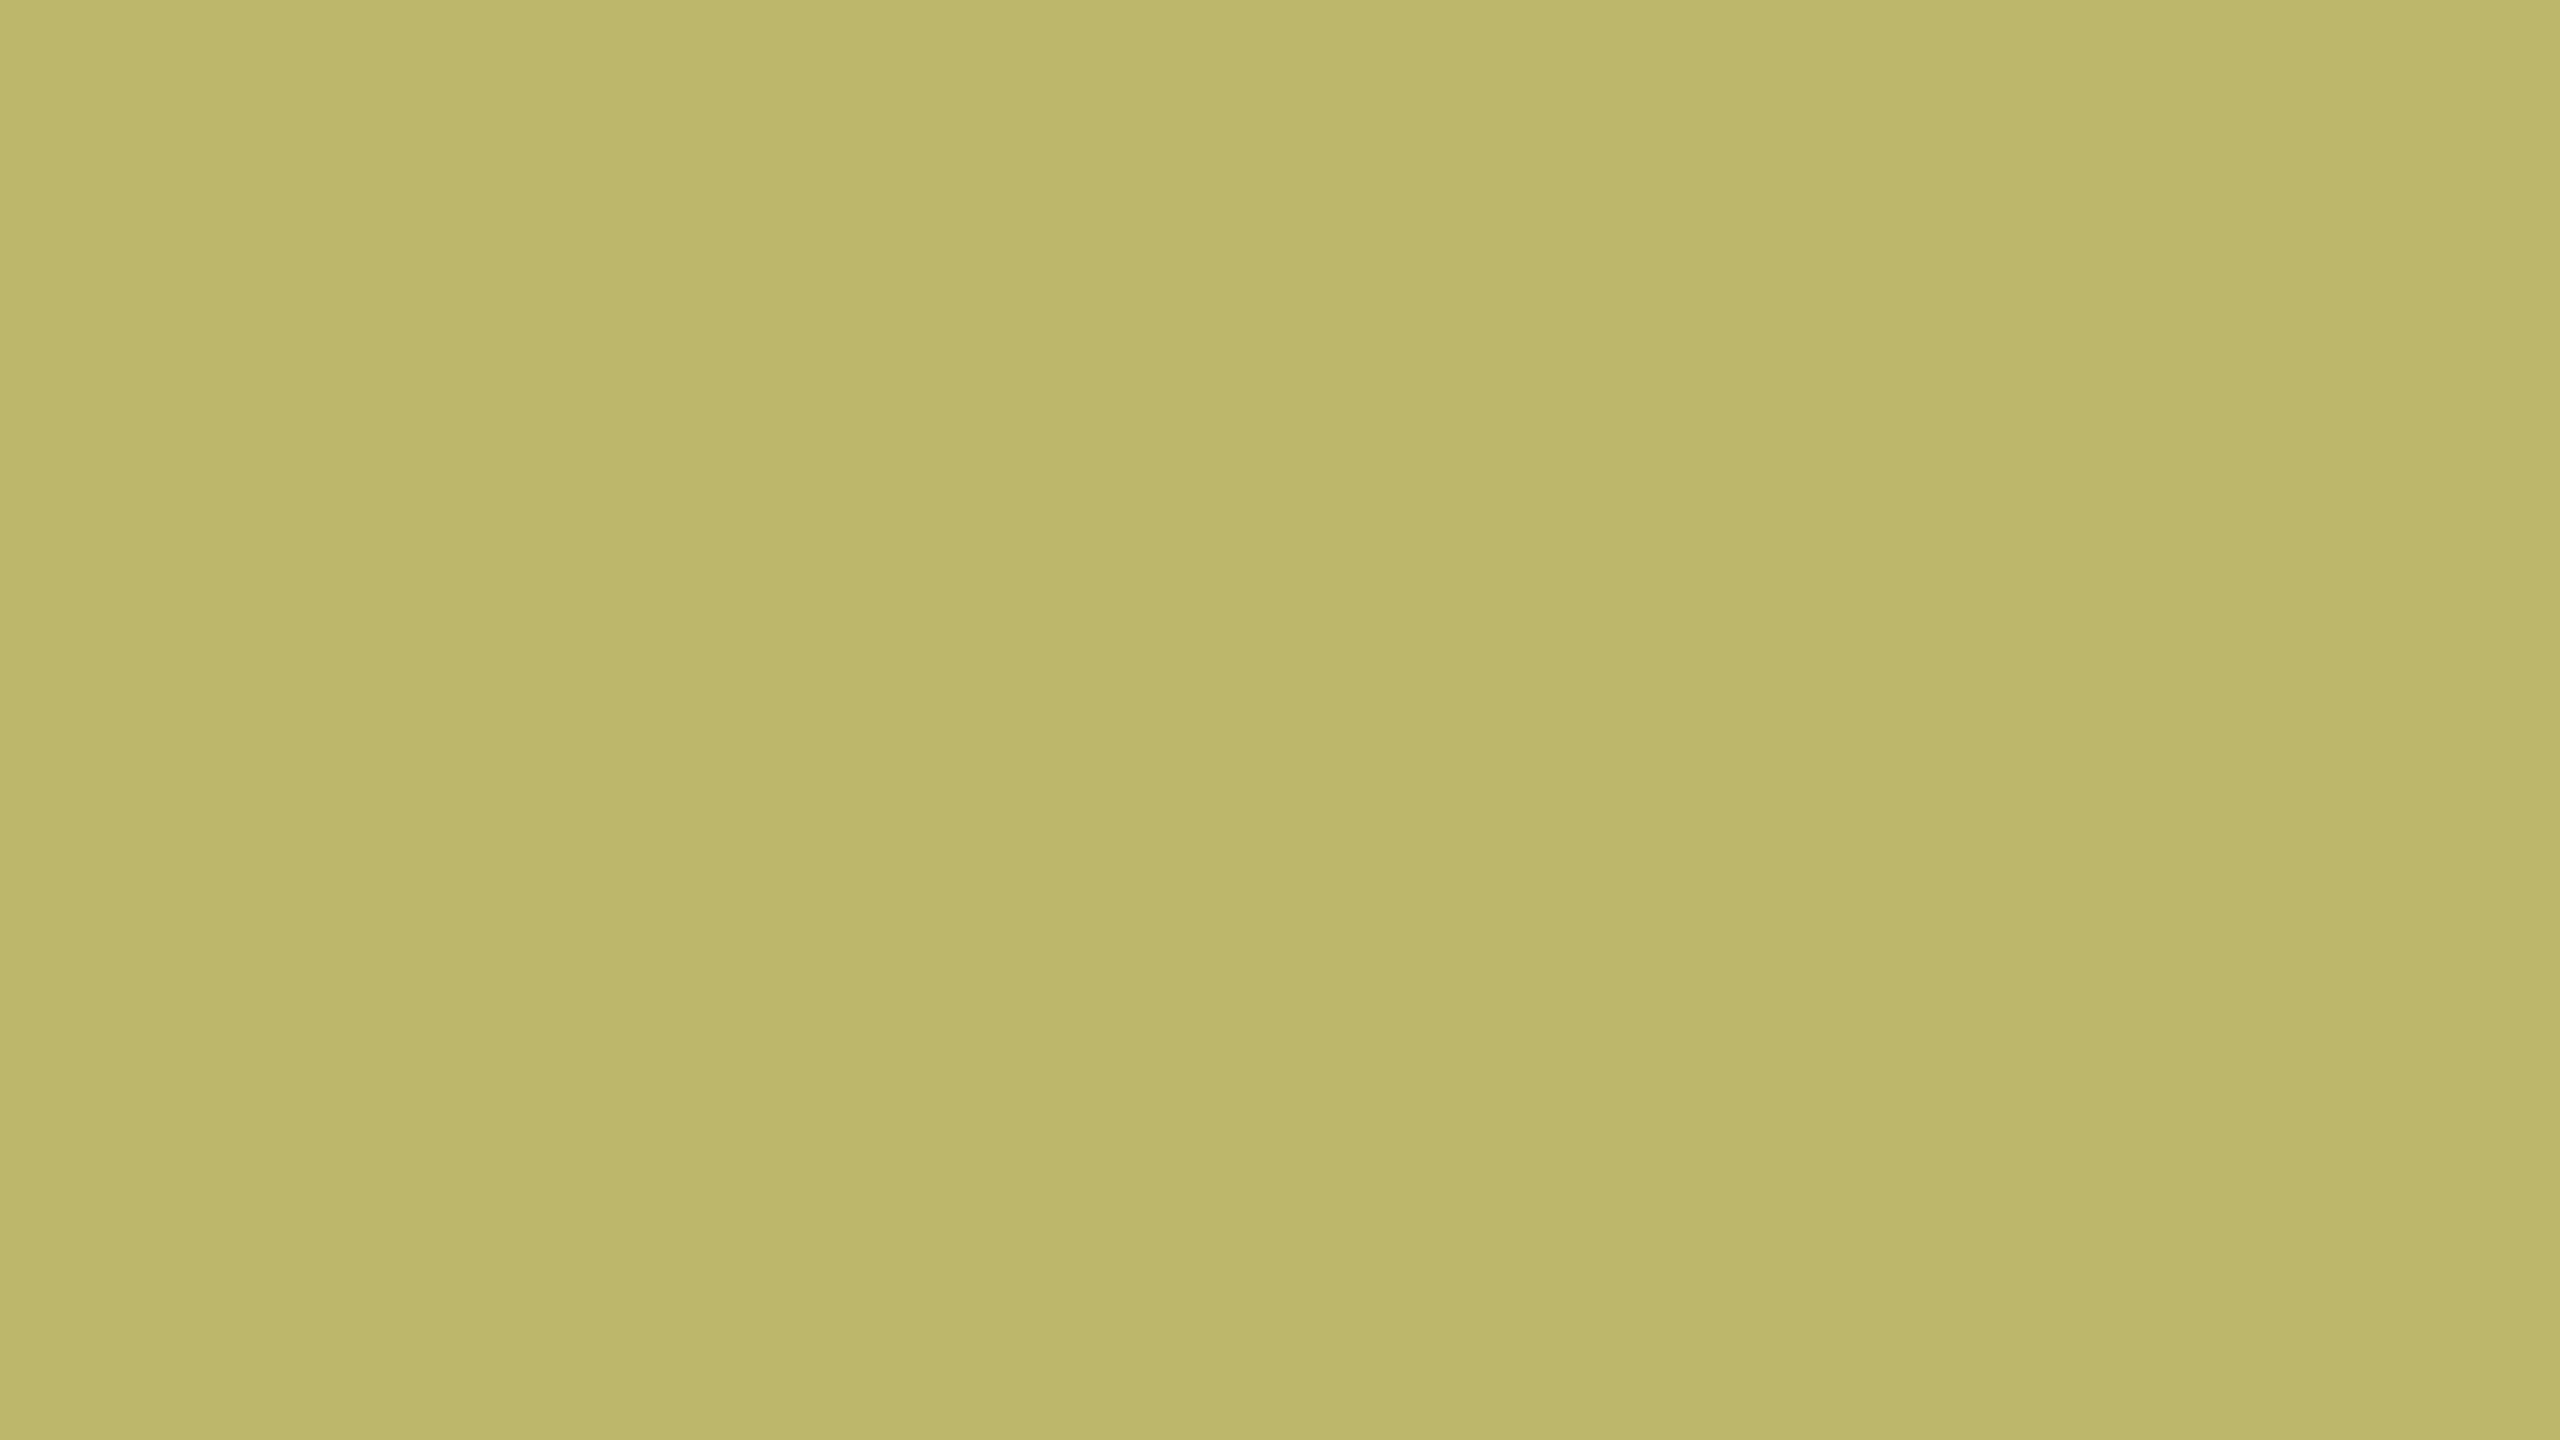 2560x1440 Dark Khaki Solid Color Background